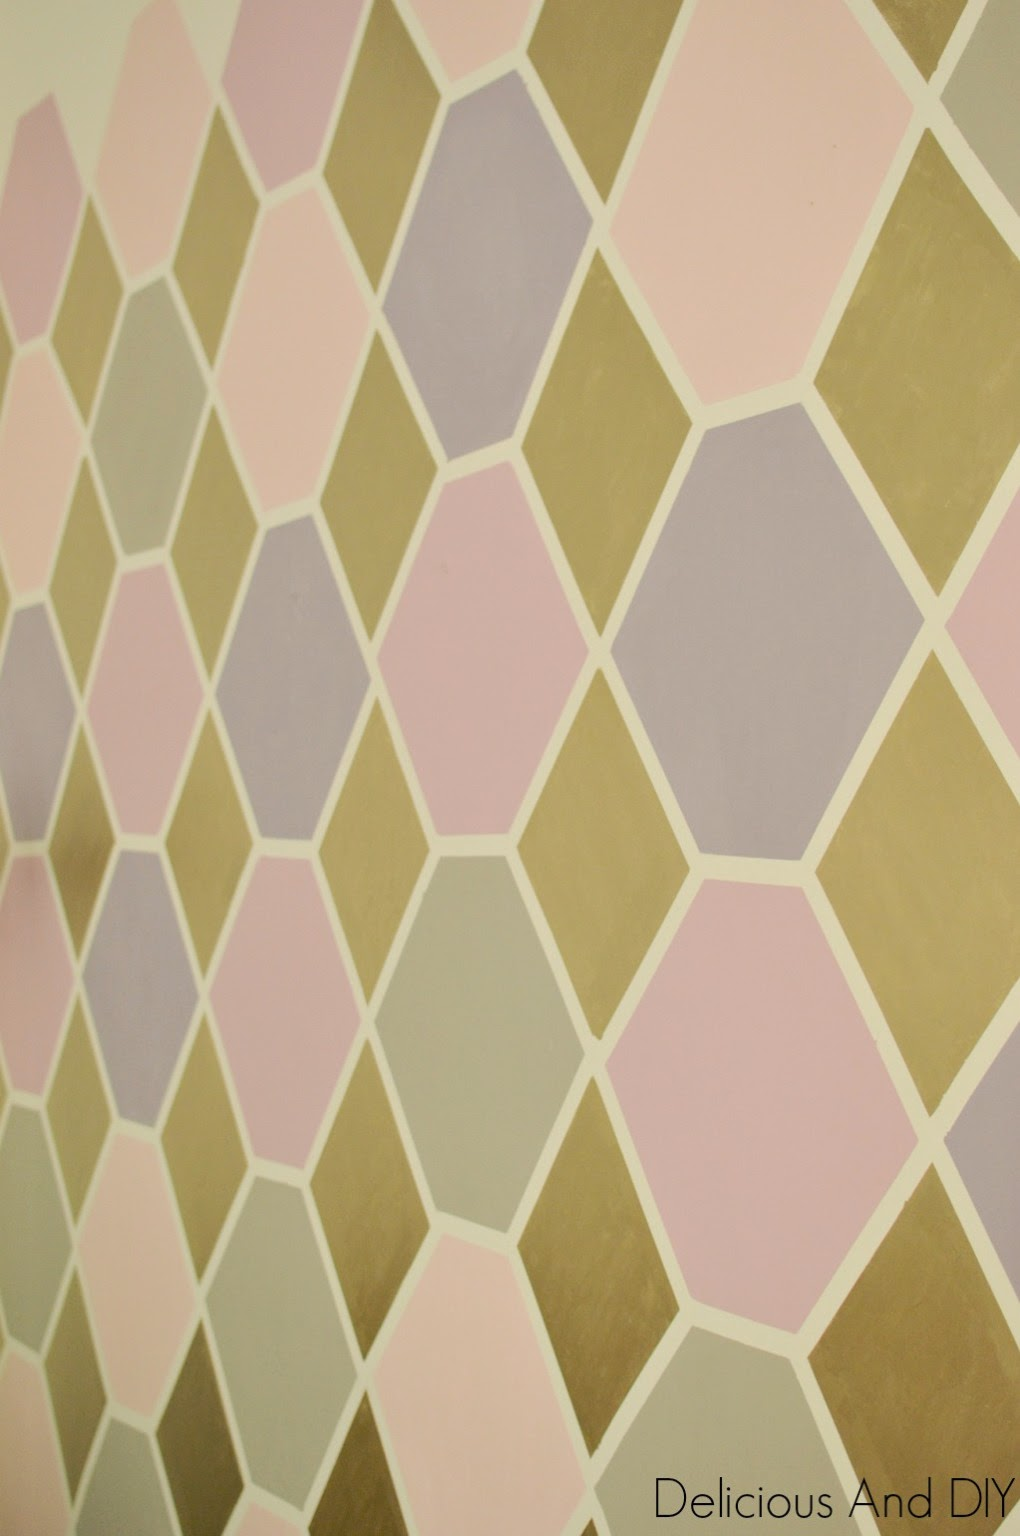 Anam from Delicious and DIY has an eye for pattern, here's a beautiful hexagonal wall she painted.